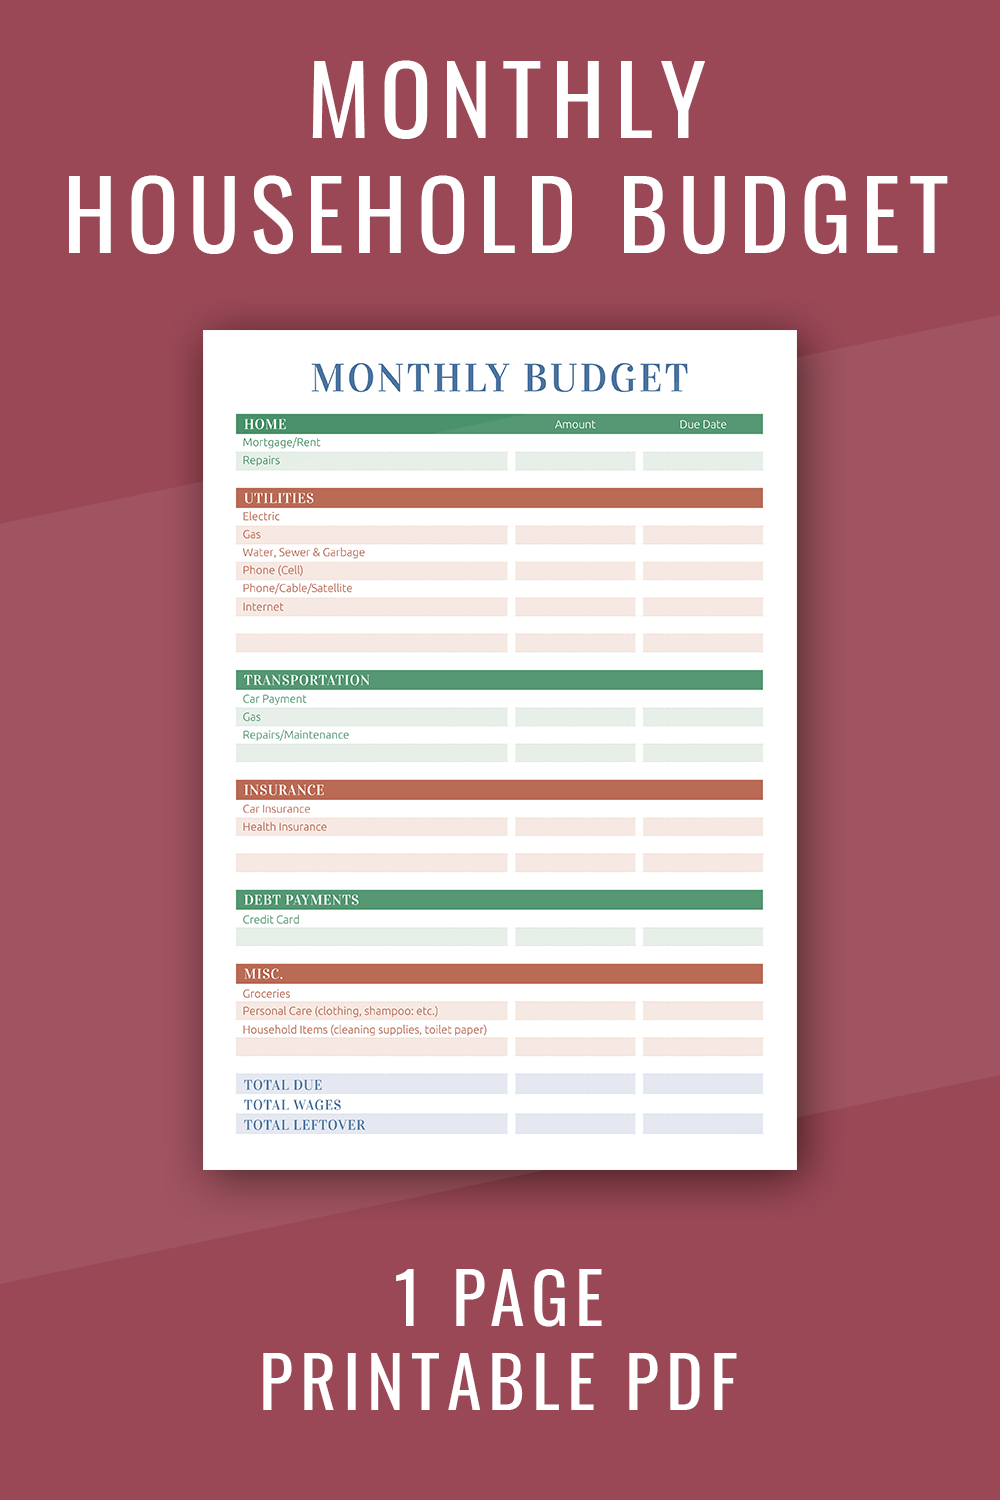 Monthly Household Budget Planner Free Printable Pdf Budget Planner Budget Planner Free Budget Planner Template